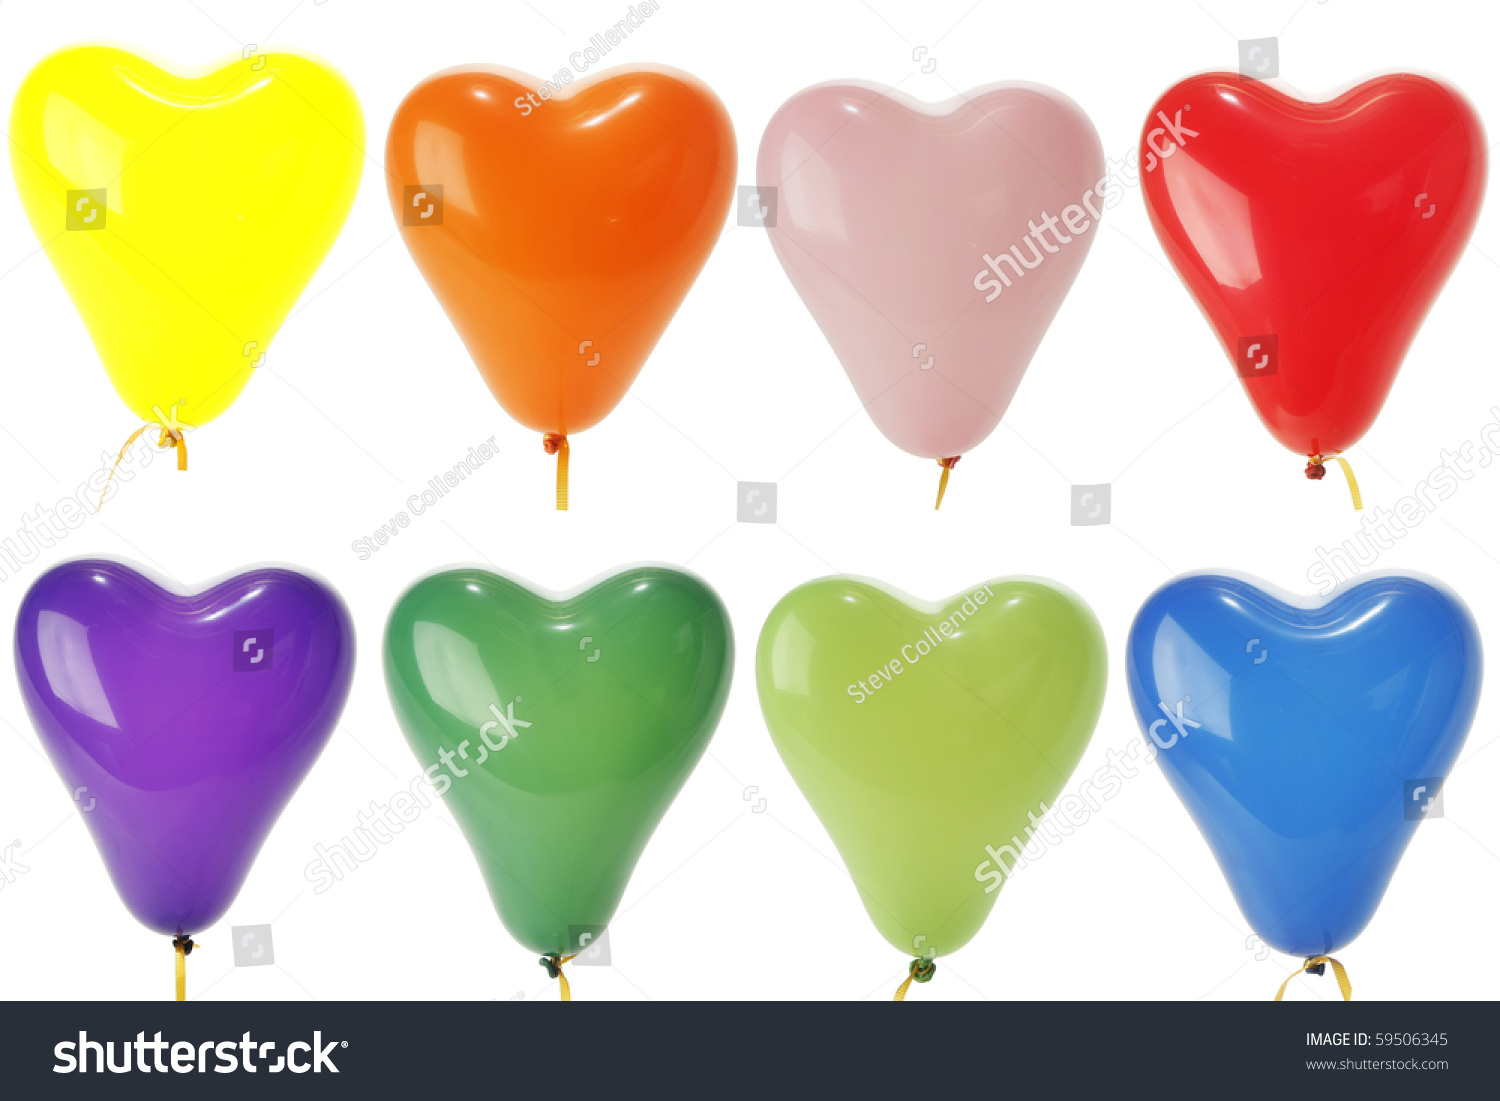 Green and blue balloons - Colorful Heart Shape Balloons Yellow Red Orange Blue Green Pink